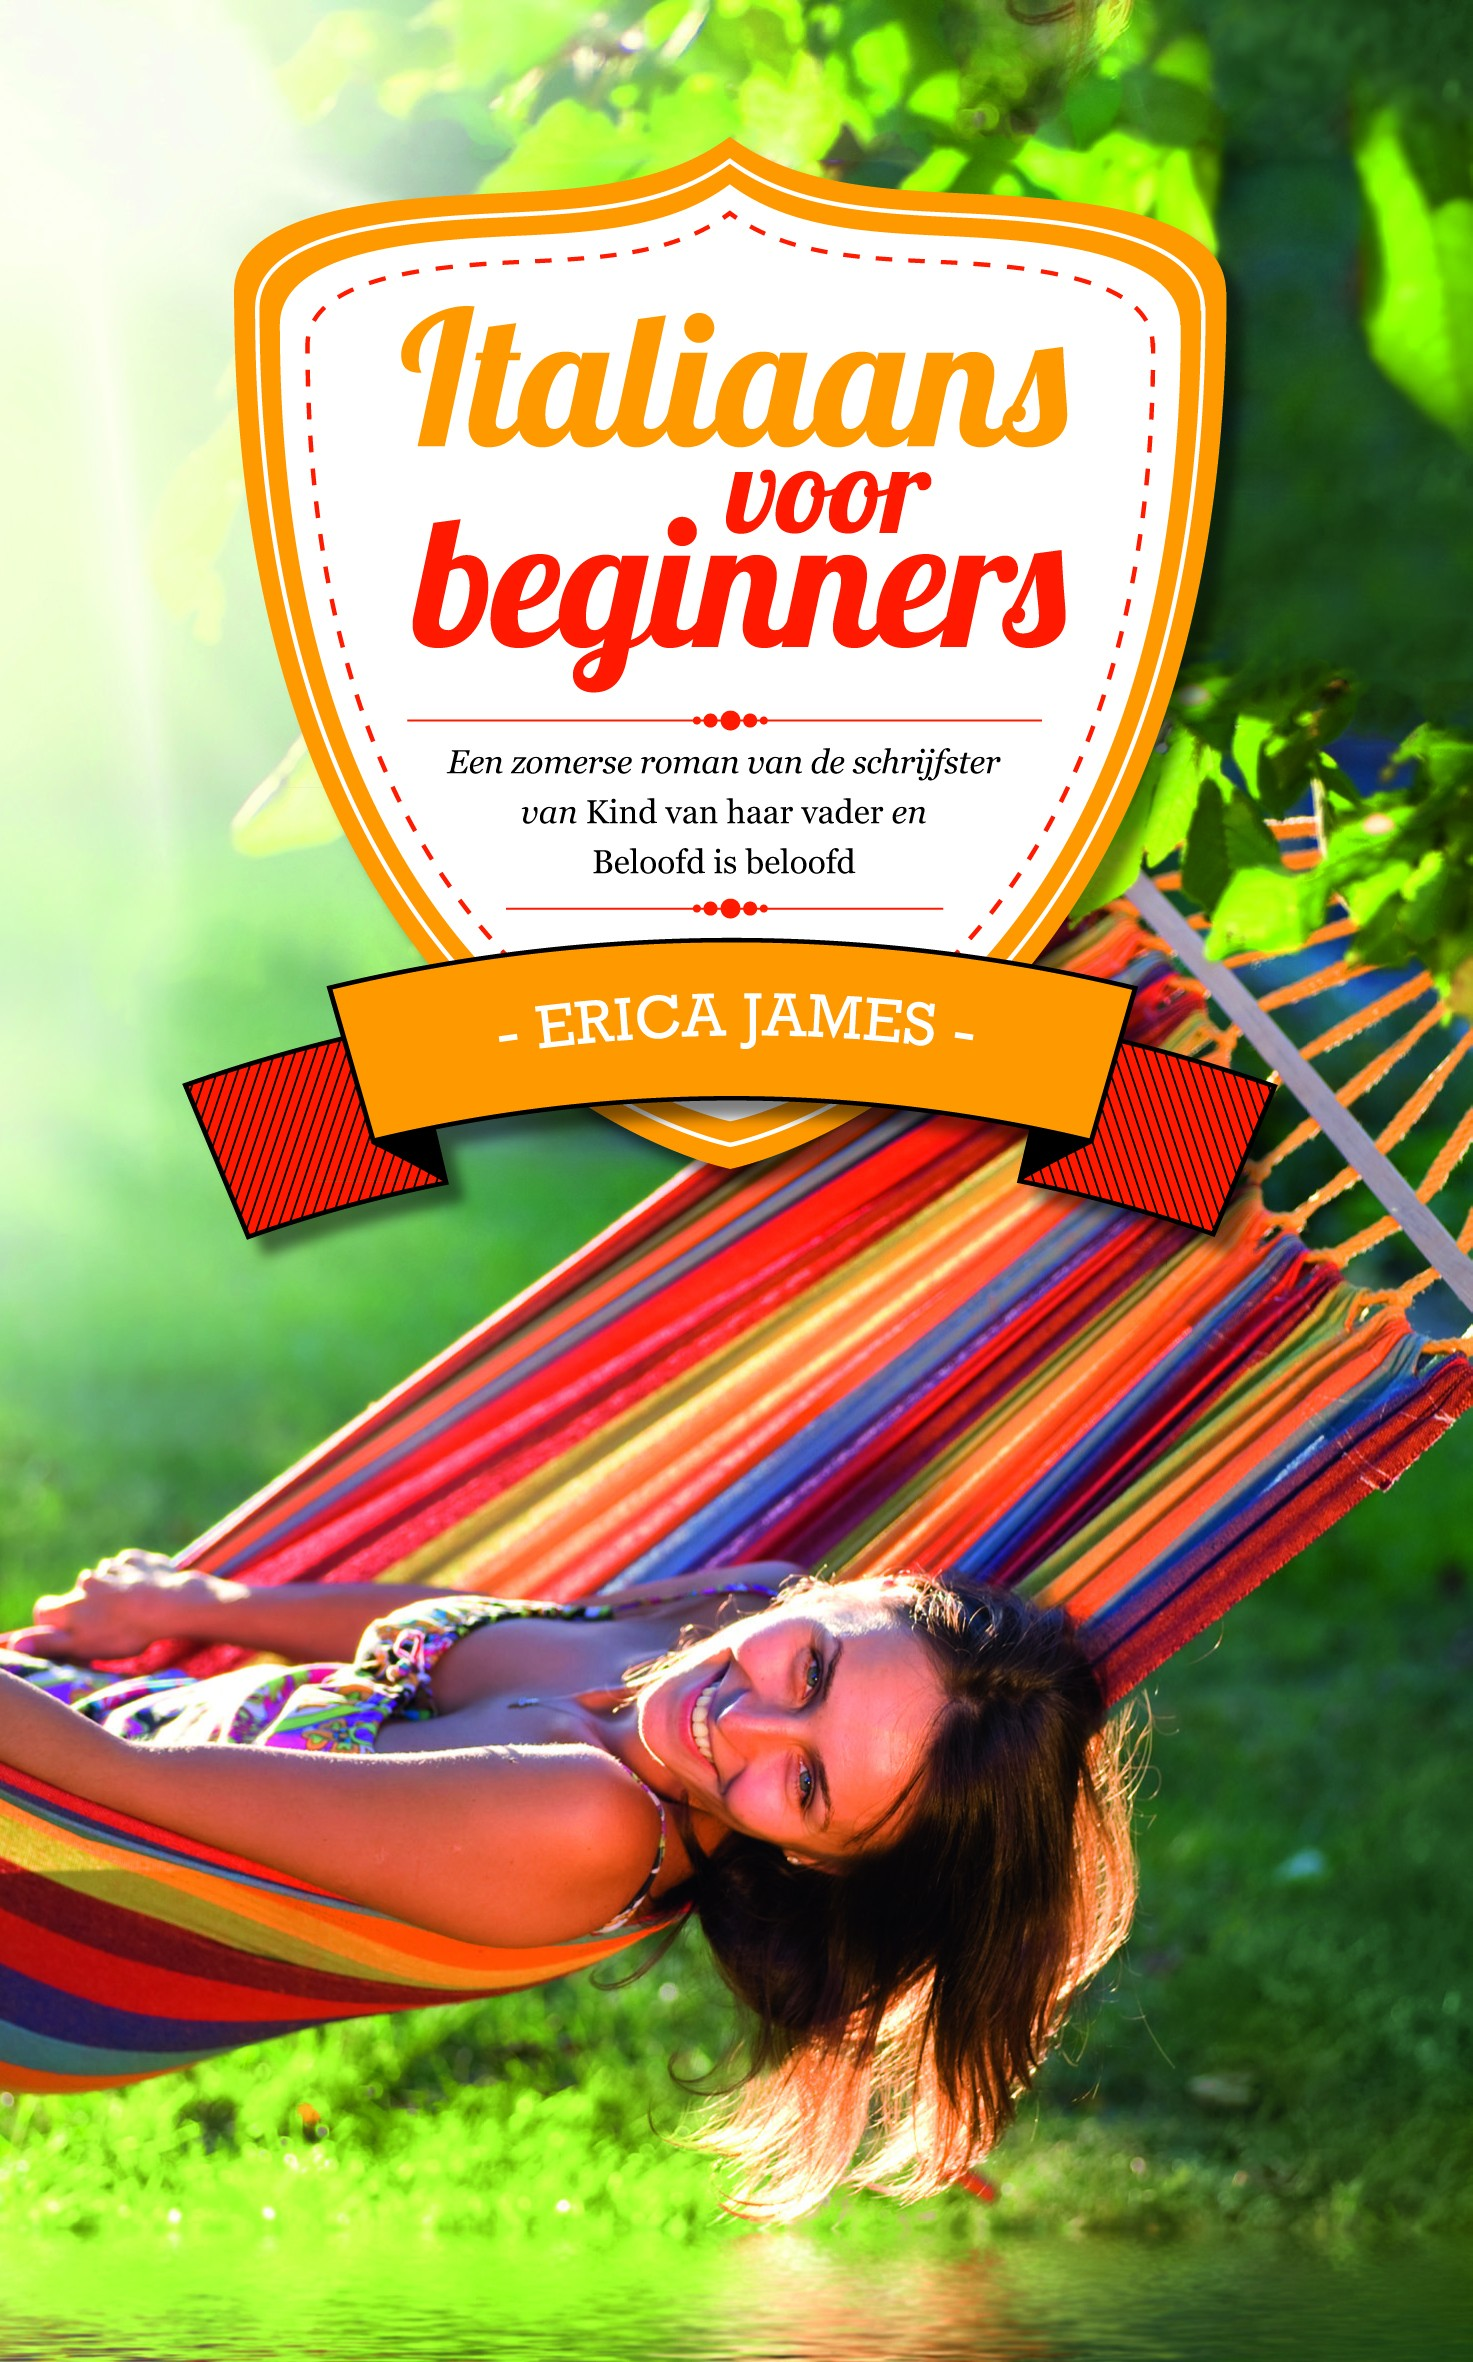 Erica James, Italiaans voor beginners